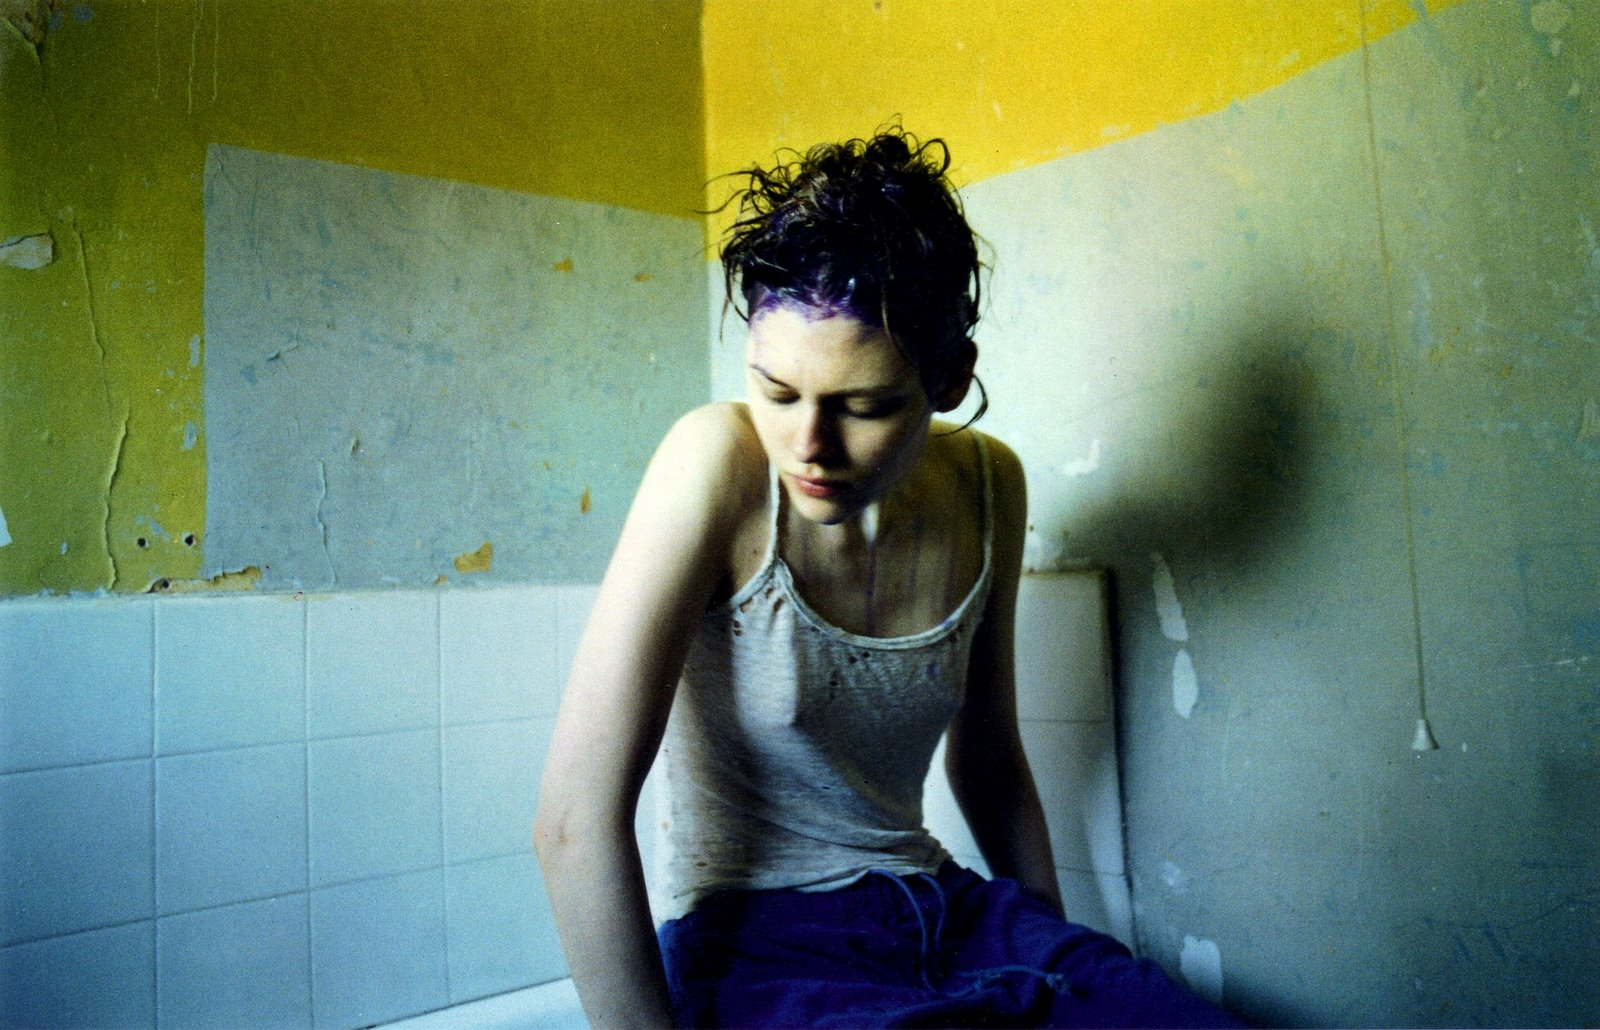 corinne-day photography braless pokies bath 2000